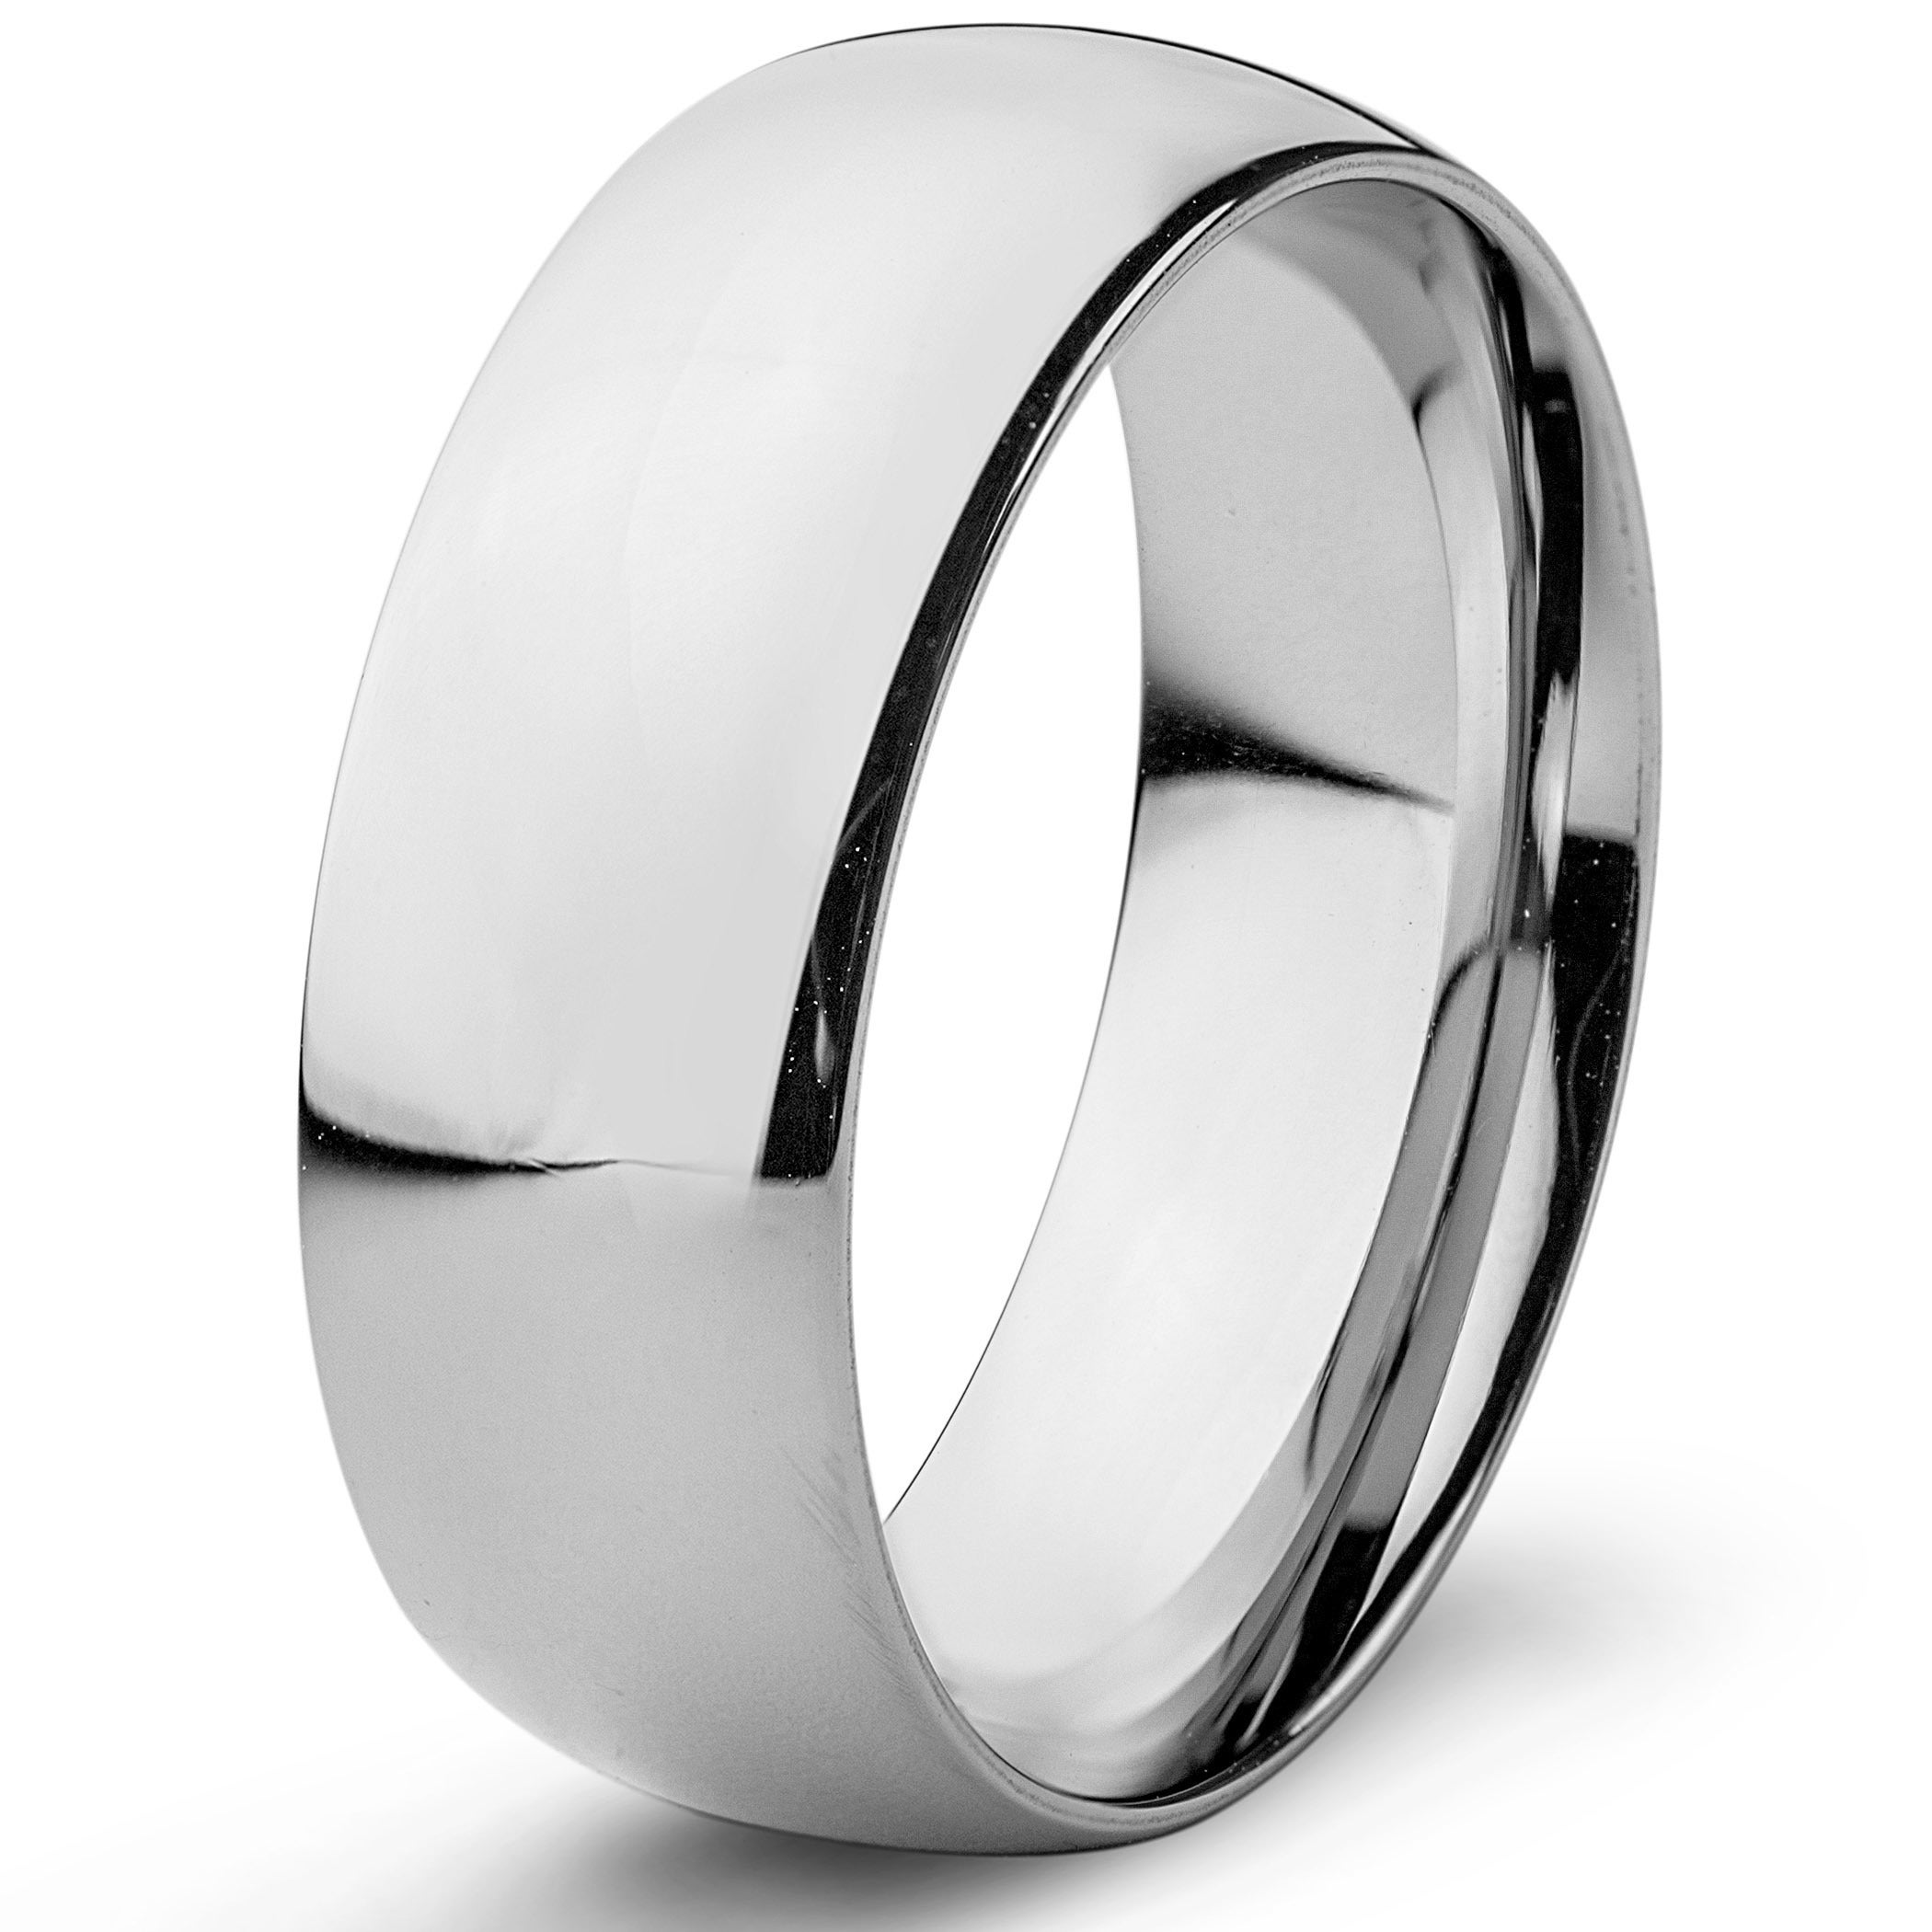 men s stainless steel high polished domed wedding band ring 8mm